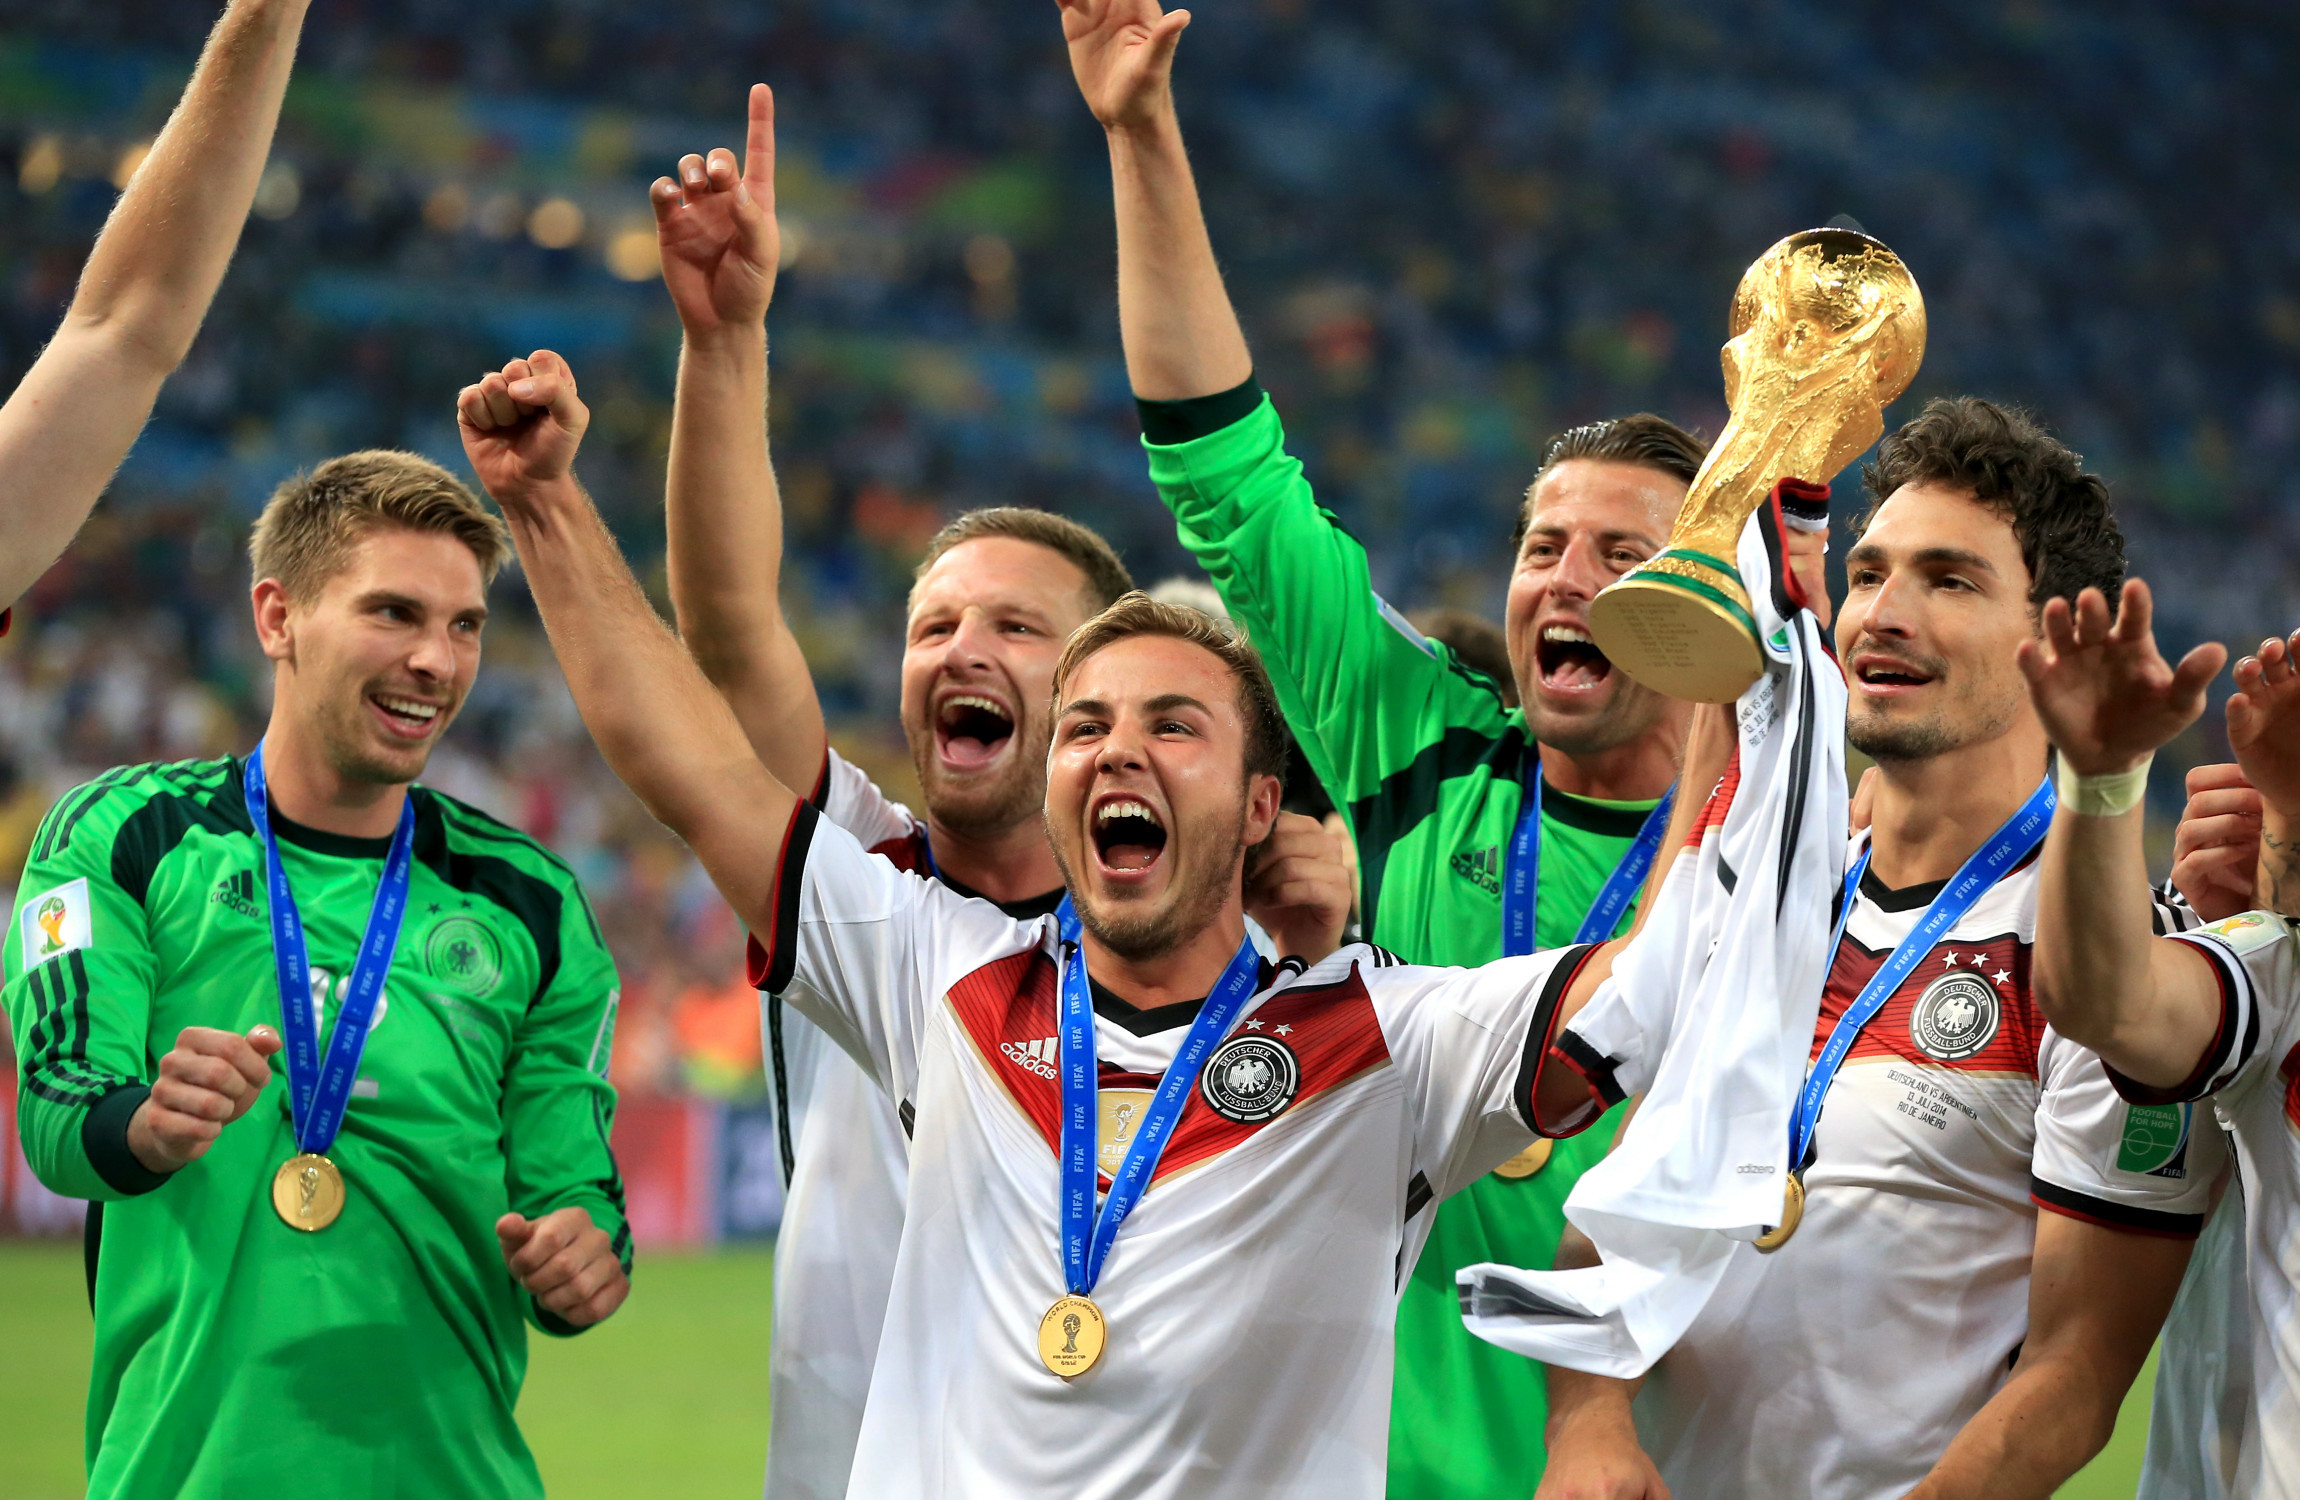 Gotze lifts the World Cup trophy alongside German team-mates four years ago.                     Image Nick Potts